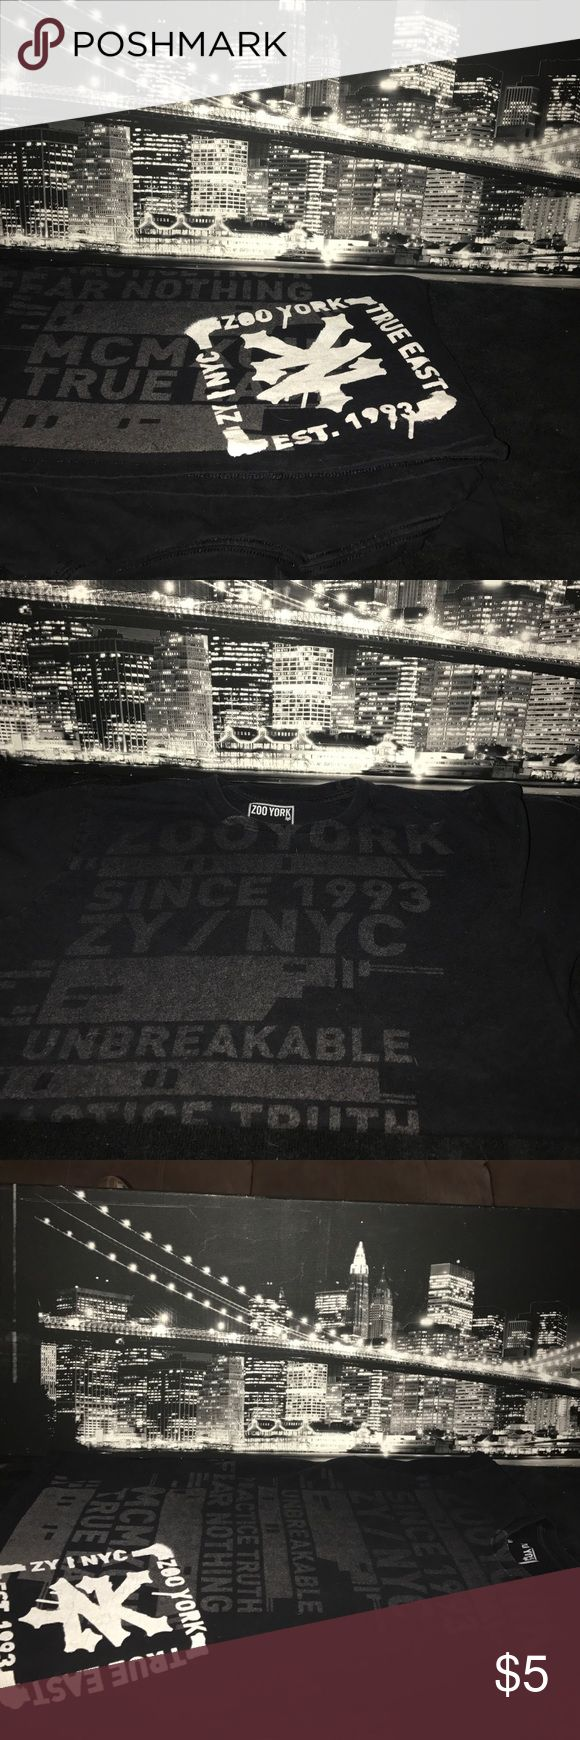 Zoo York T Shirt This Zoo York shirt will freshen up anyone's style. Dress to impress and rock this shirt wherever you go. Have fun, live hard, and skate hard. Zooyork!! That is not the slogan, but the slogan I gave them. Enjoy. Zoo York Shirts Tees - Short Sleeve